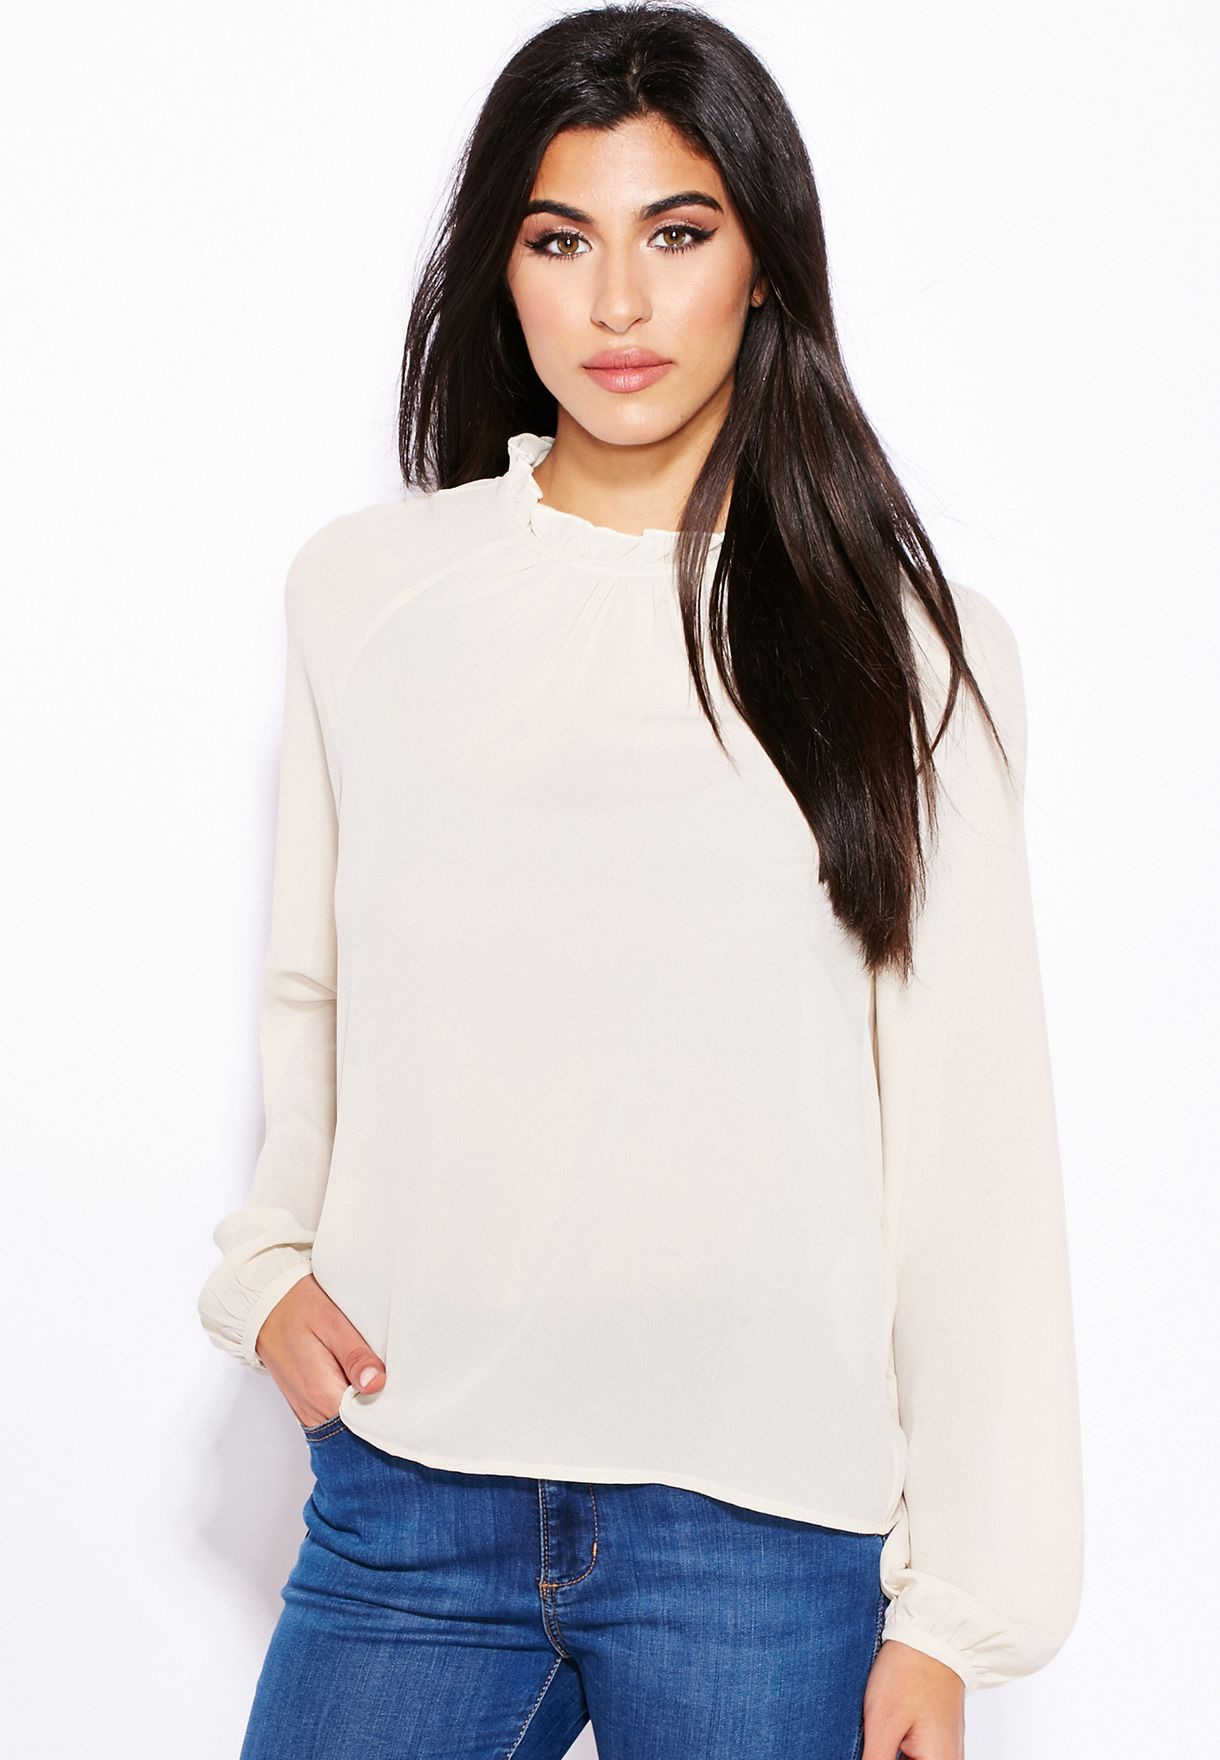 621f4618249d88 Shop Vero Moda white Ruffle Neck Top for Women in Qatar - VE758AT05UGK